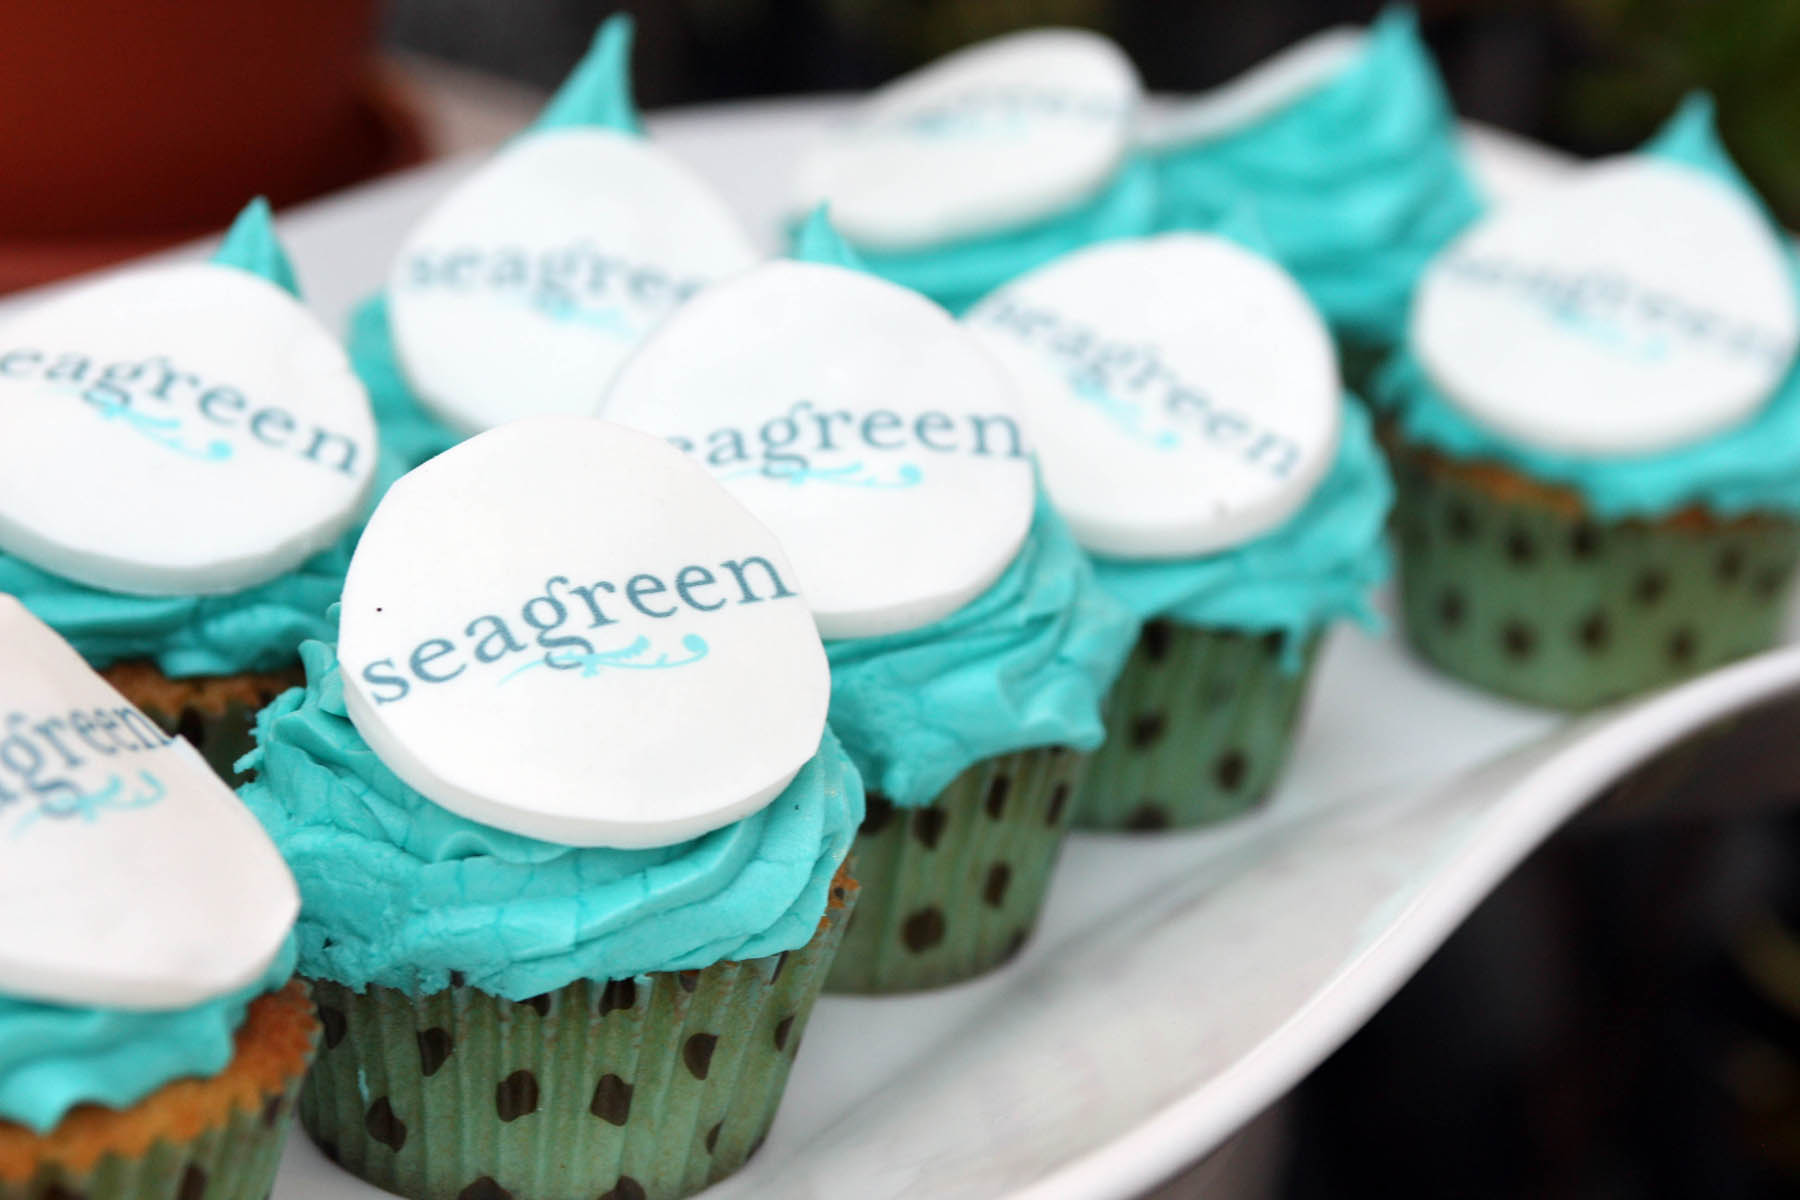 Party People: Seagreen Relaunch